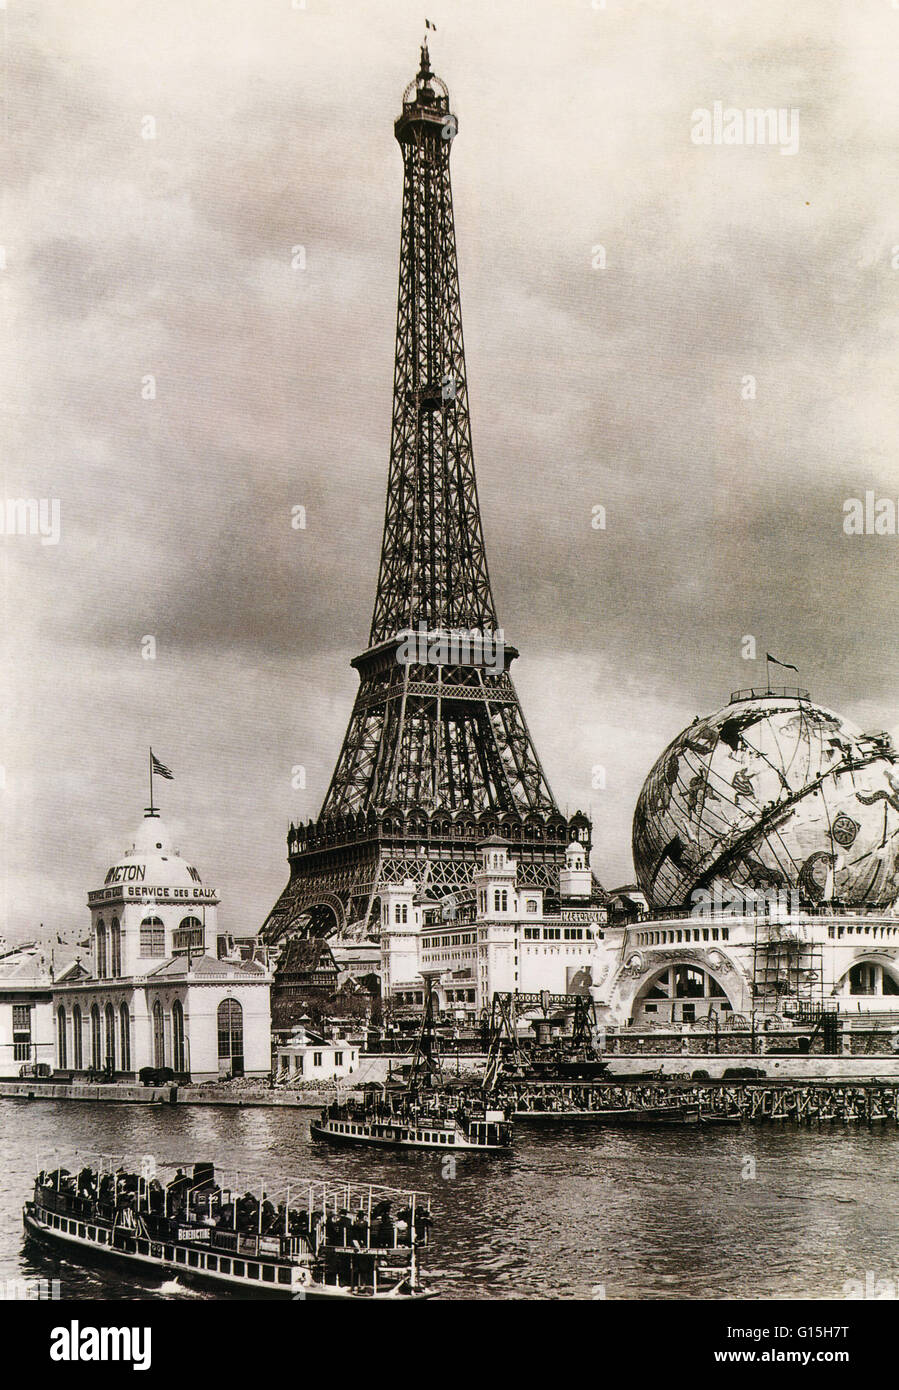 the exposition universelle of 1900 was a world 39 s fair held. Black Bedroom Furniture Sets. Home Design Ideas